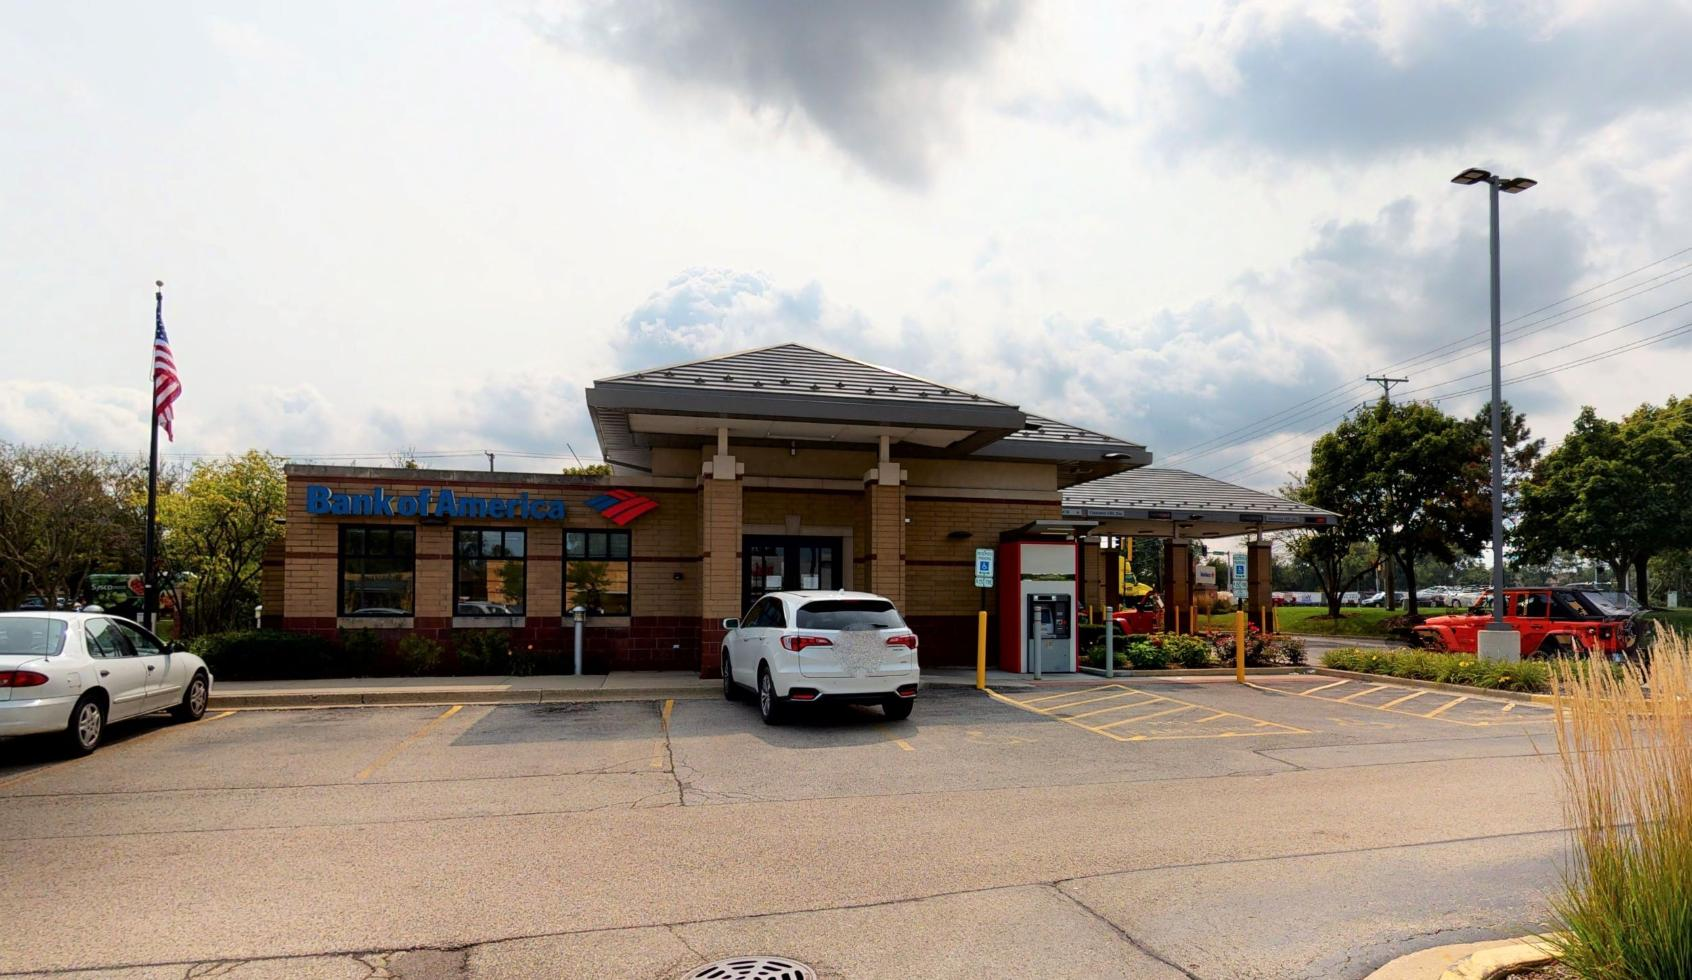 Bank of America financial center with drive-thru ATM   2821 Pfingsten Rd, Glenview, IL 60026